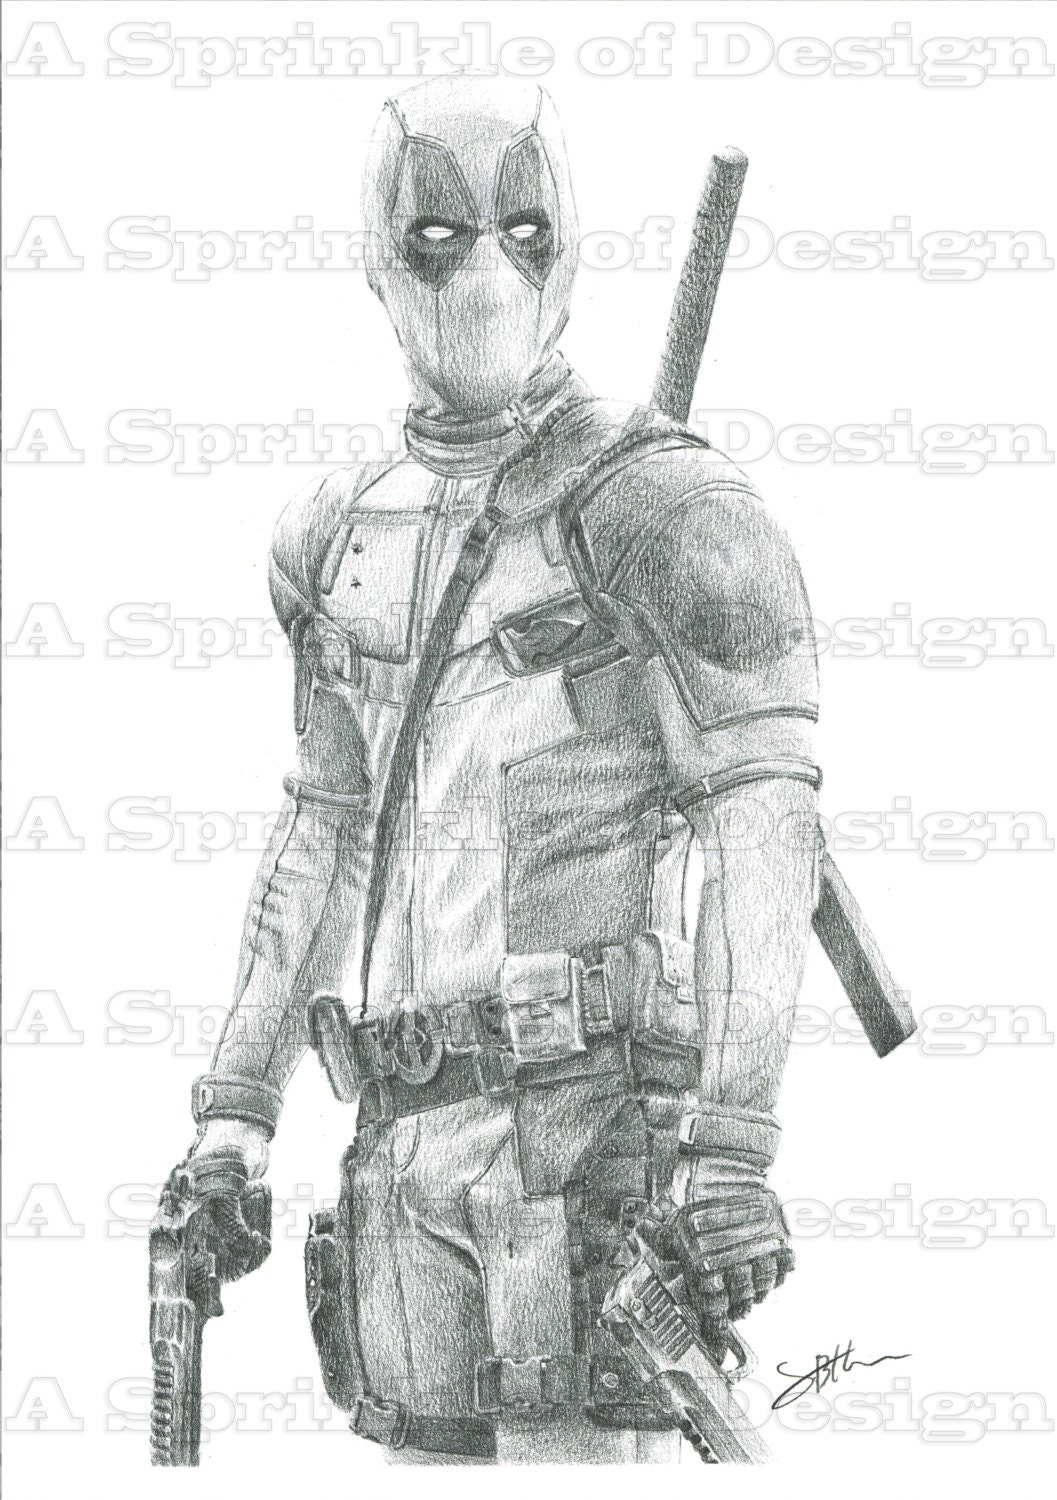 Deadpool matita disegno originale - Dessin deadpool ...